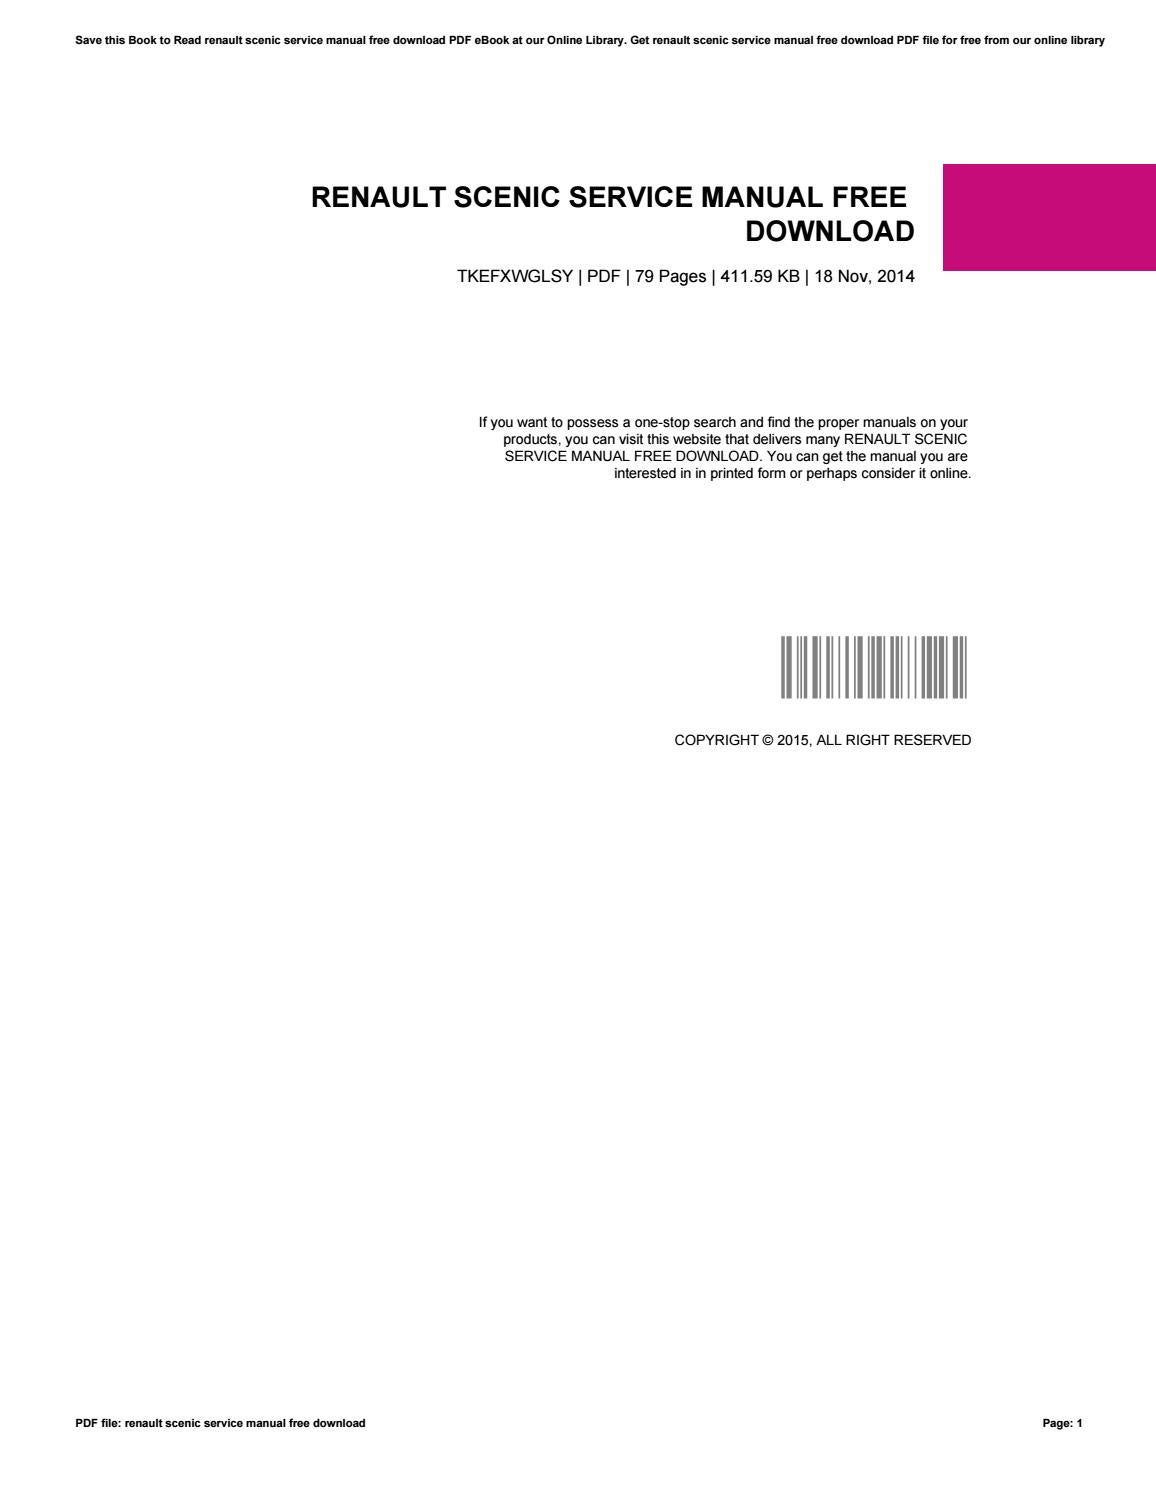 renault scenic service manual free download by Spectrum RJ 11 7.1 Update Minecraft 1.7.11